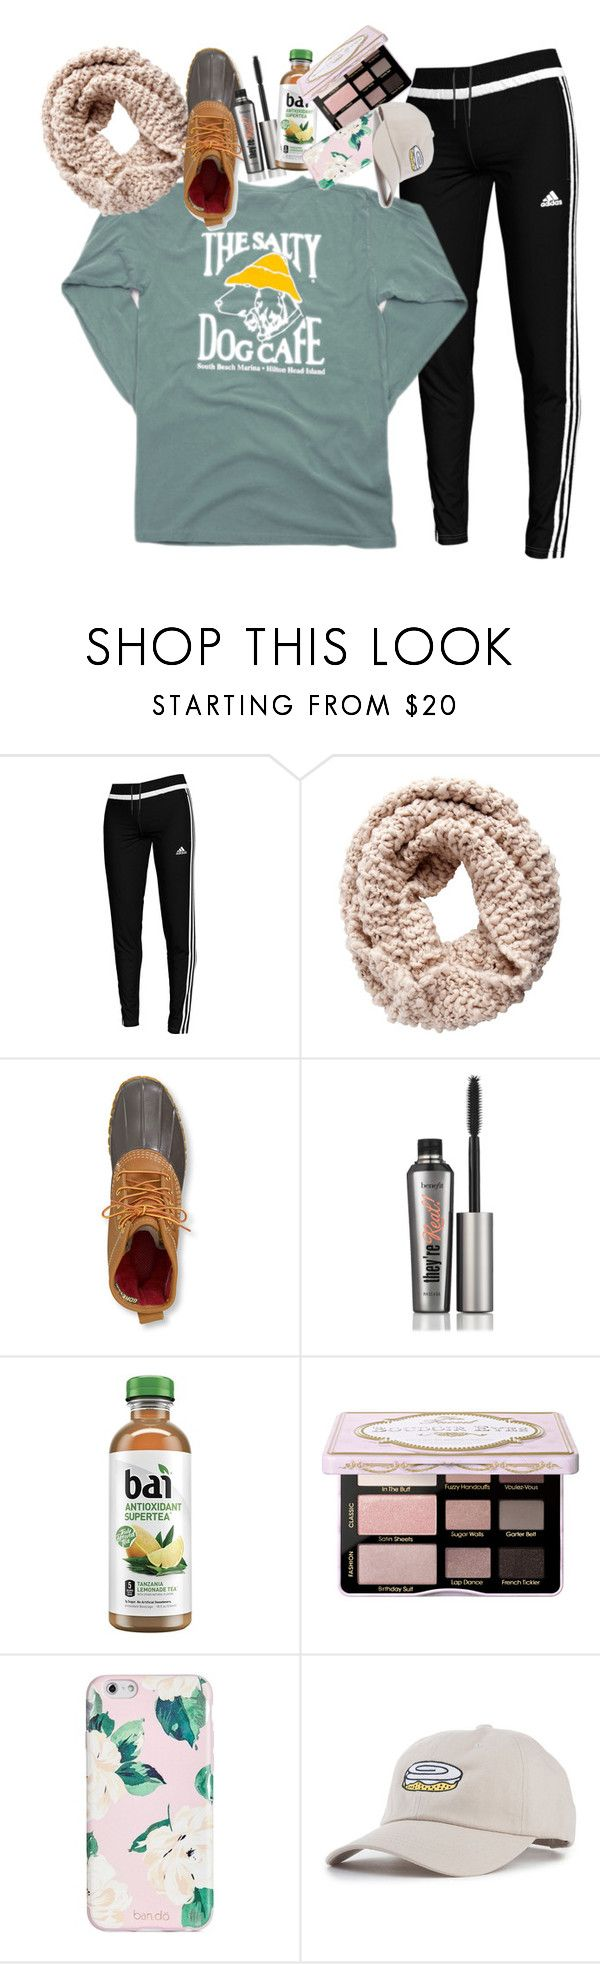 """tú eres mi universo"" by fandombreather ❤ liked on Polyvore featuring adidas, Pieces, L.L.Bean, Benefit, ban.do and KLP"